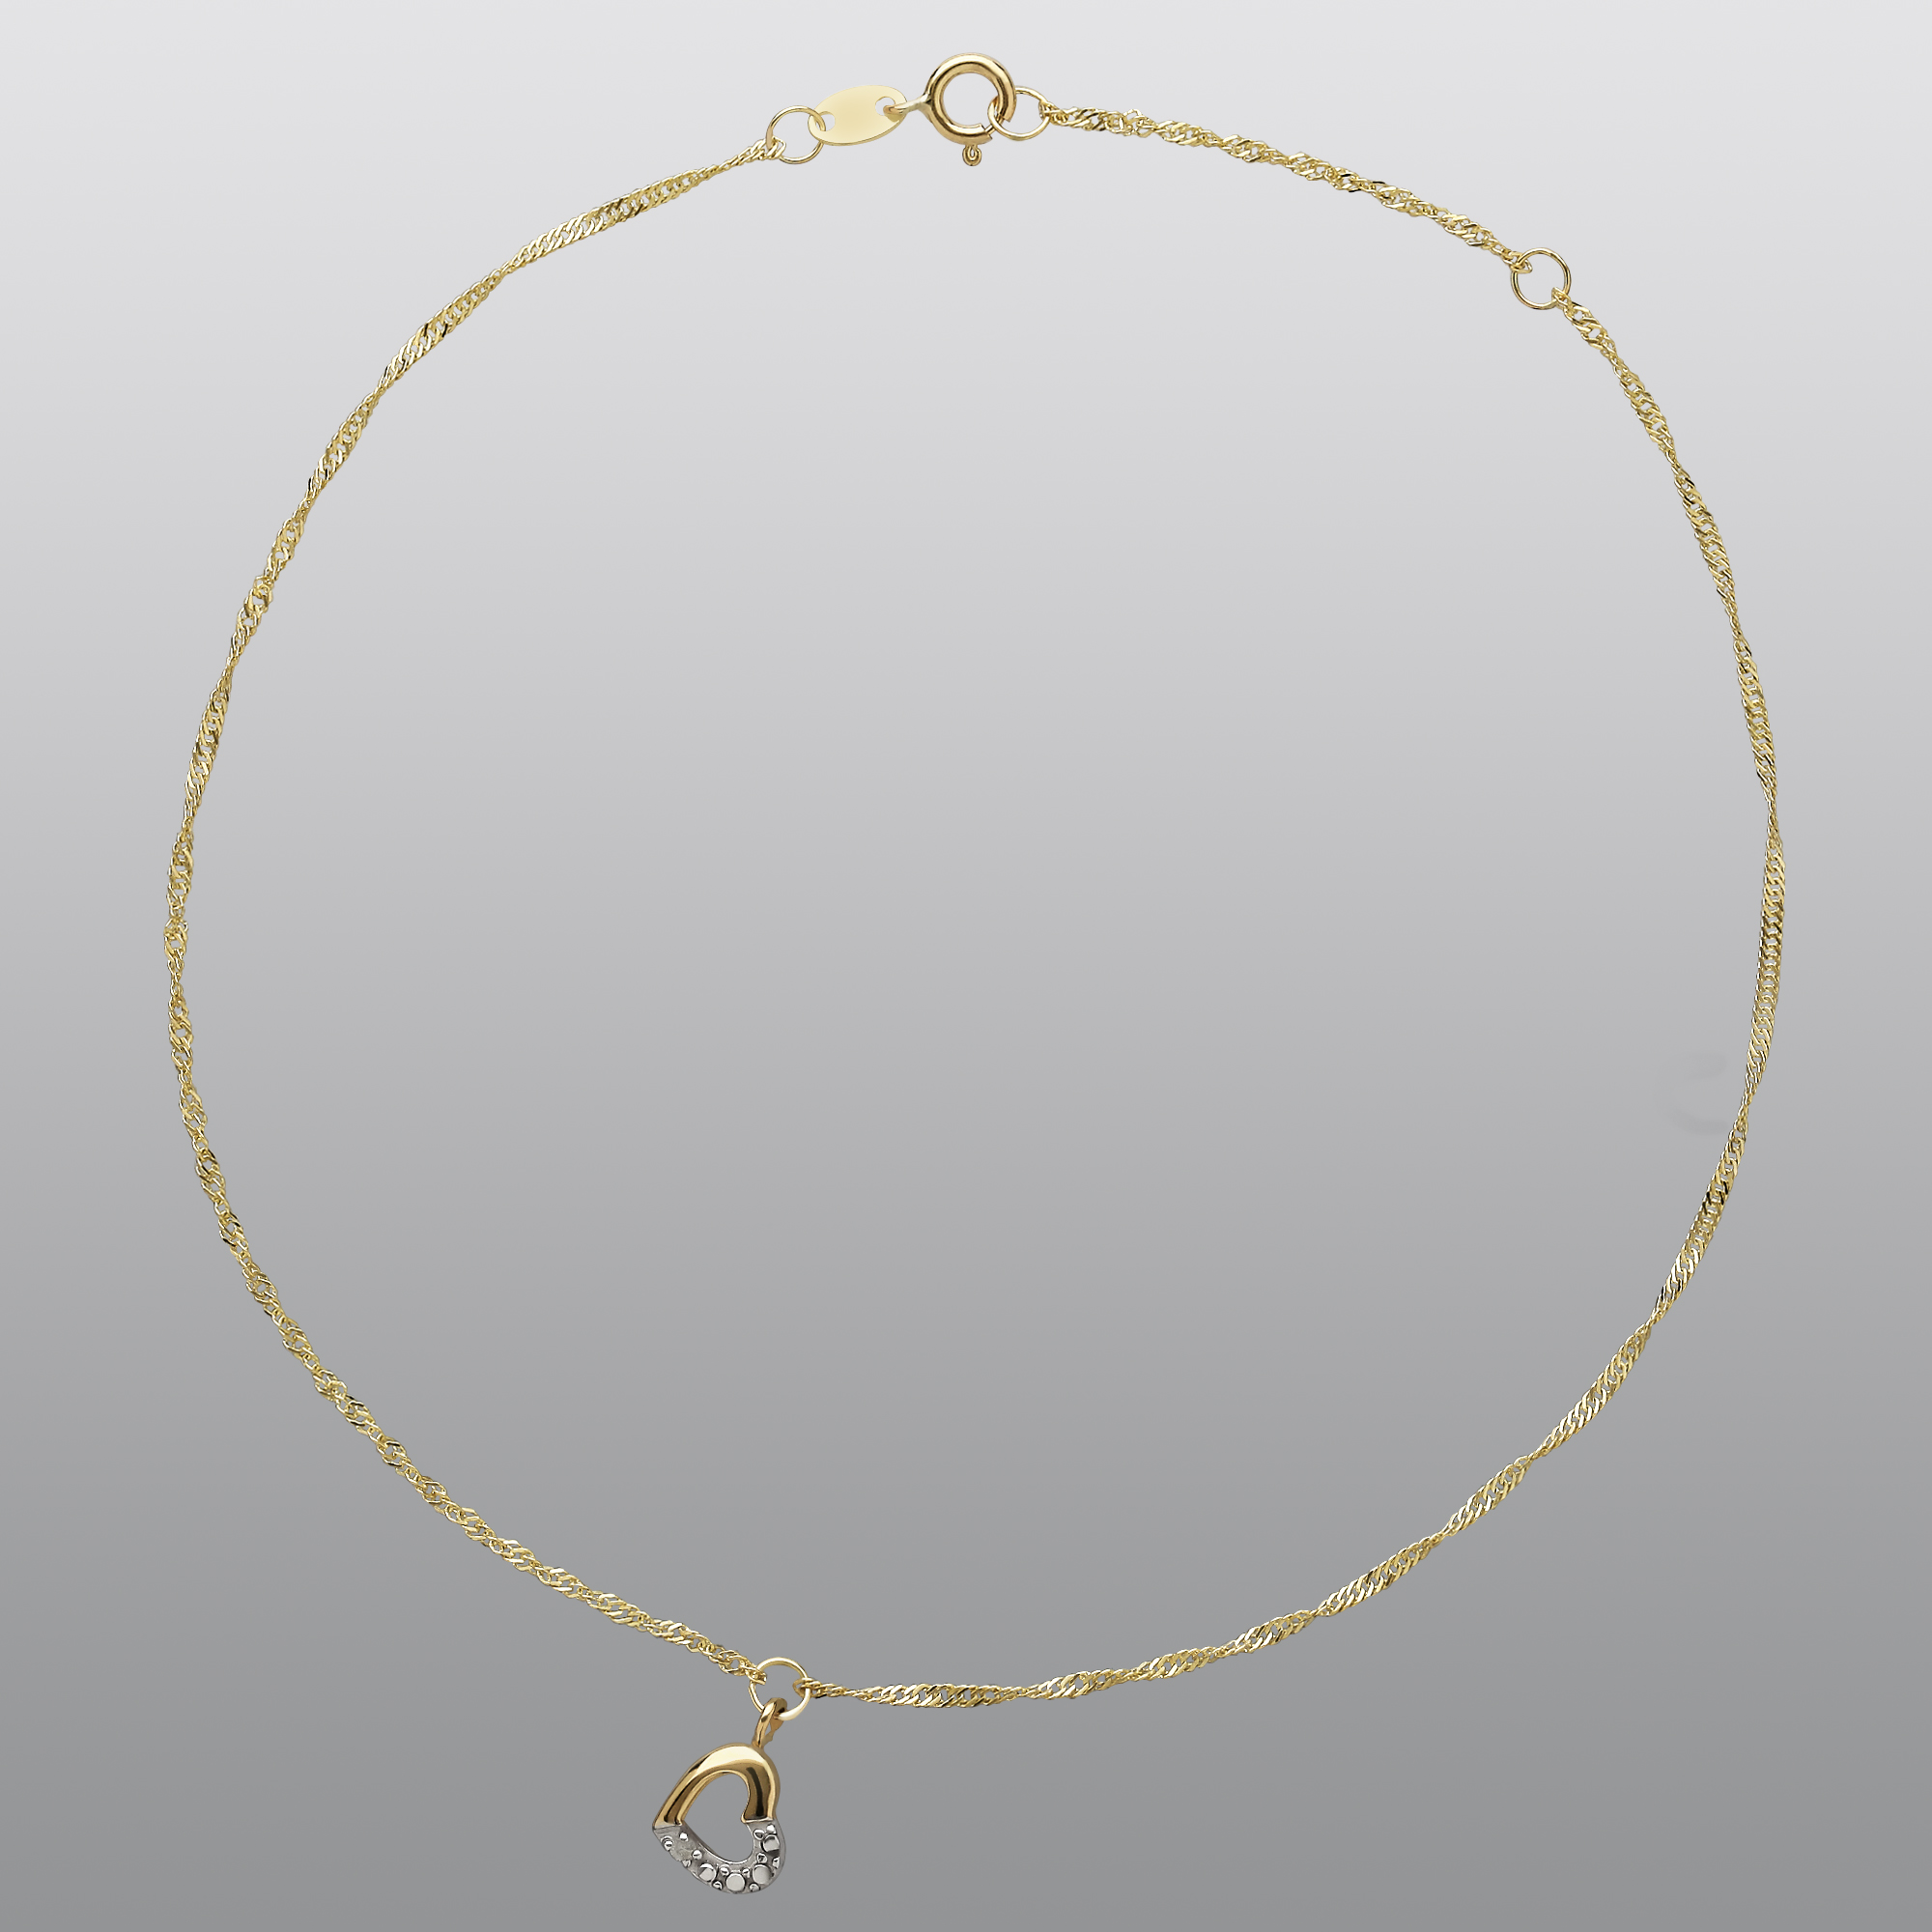 10KY Diamond Accent Open Heart Singapore Anklet in 10 Inches